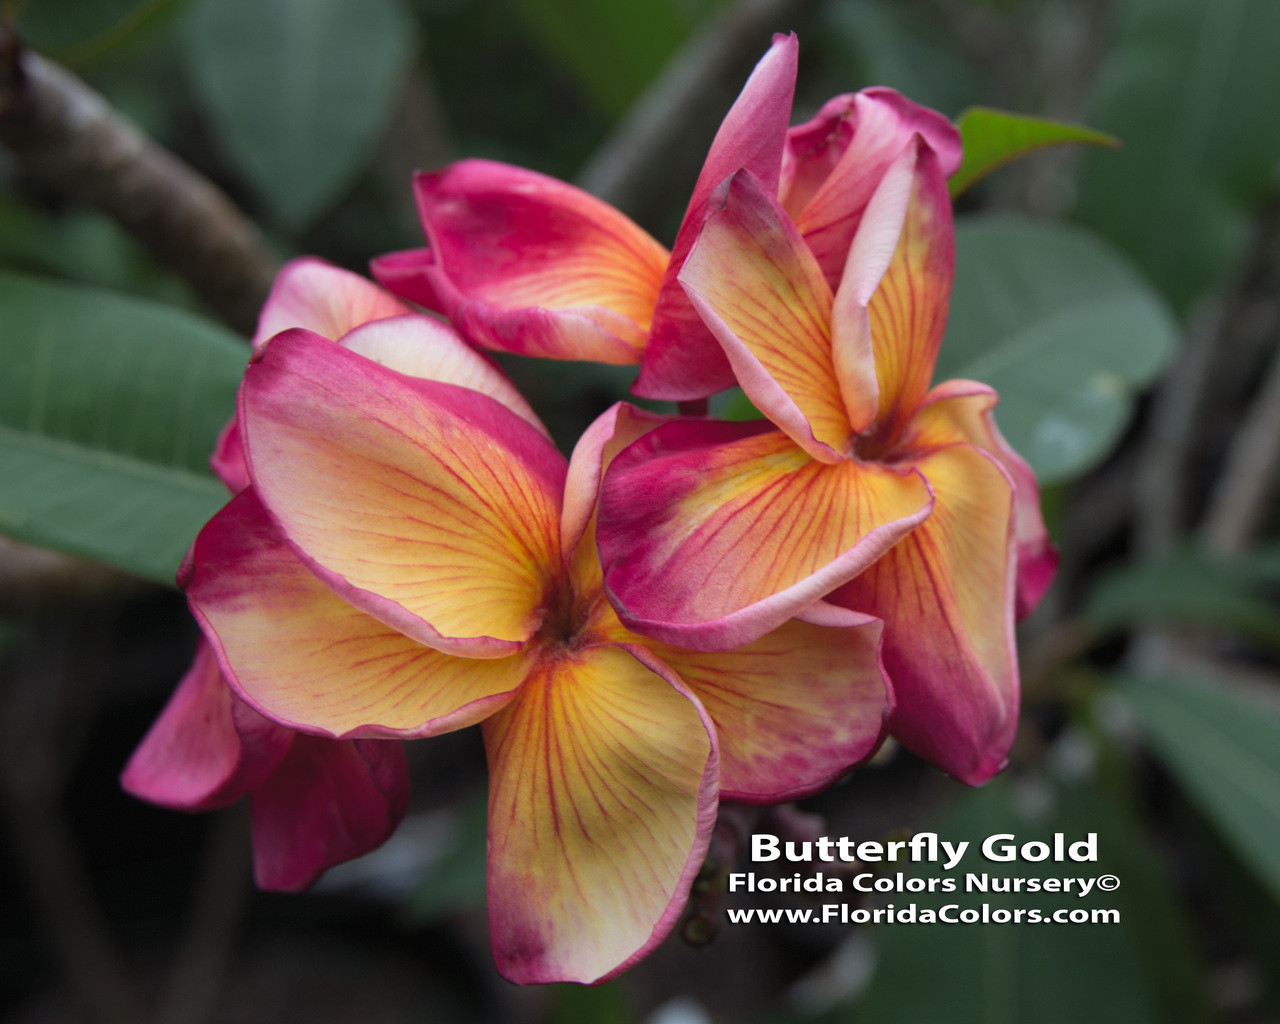 Butterfly Gold Plumeria - Plumeria by Florida Colors Nursery